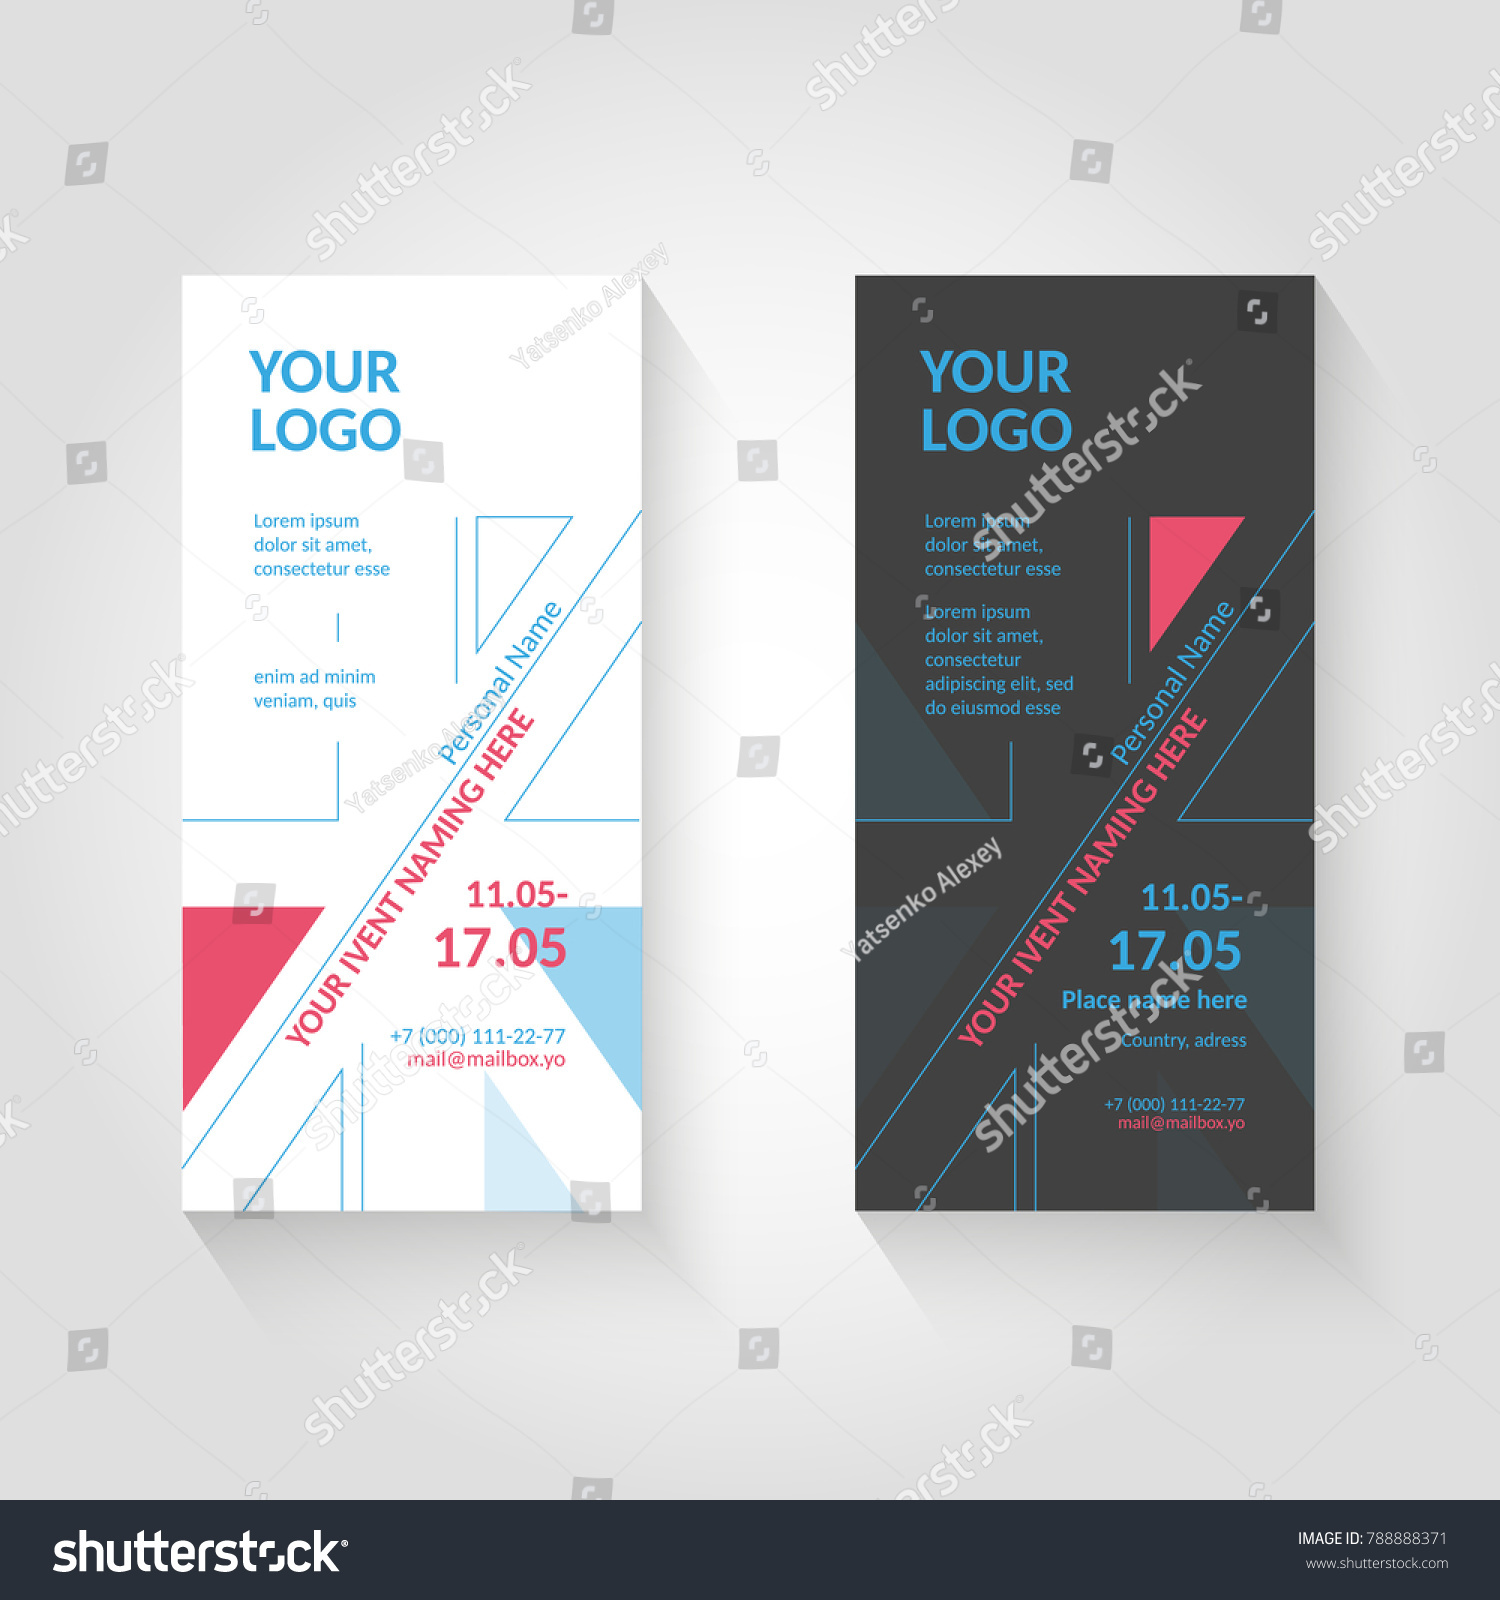 Flyer Template Based On British Flag Stock Vector 2018 788888371